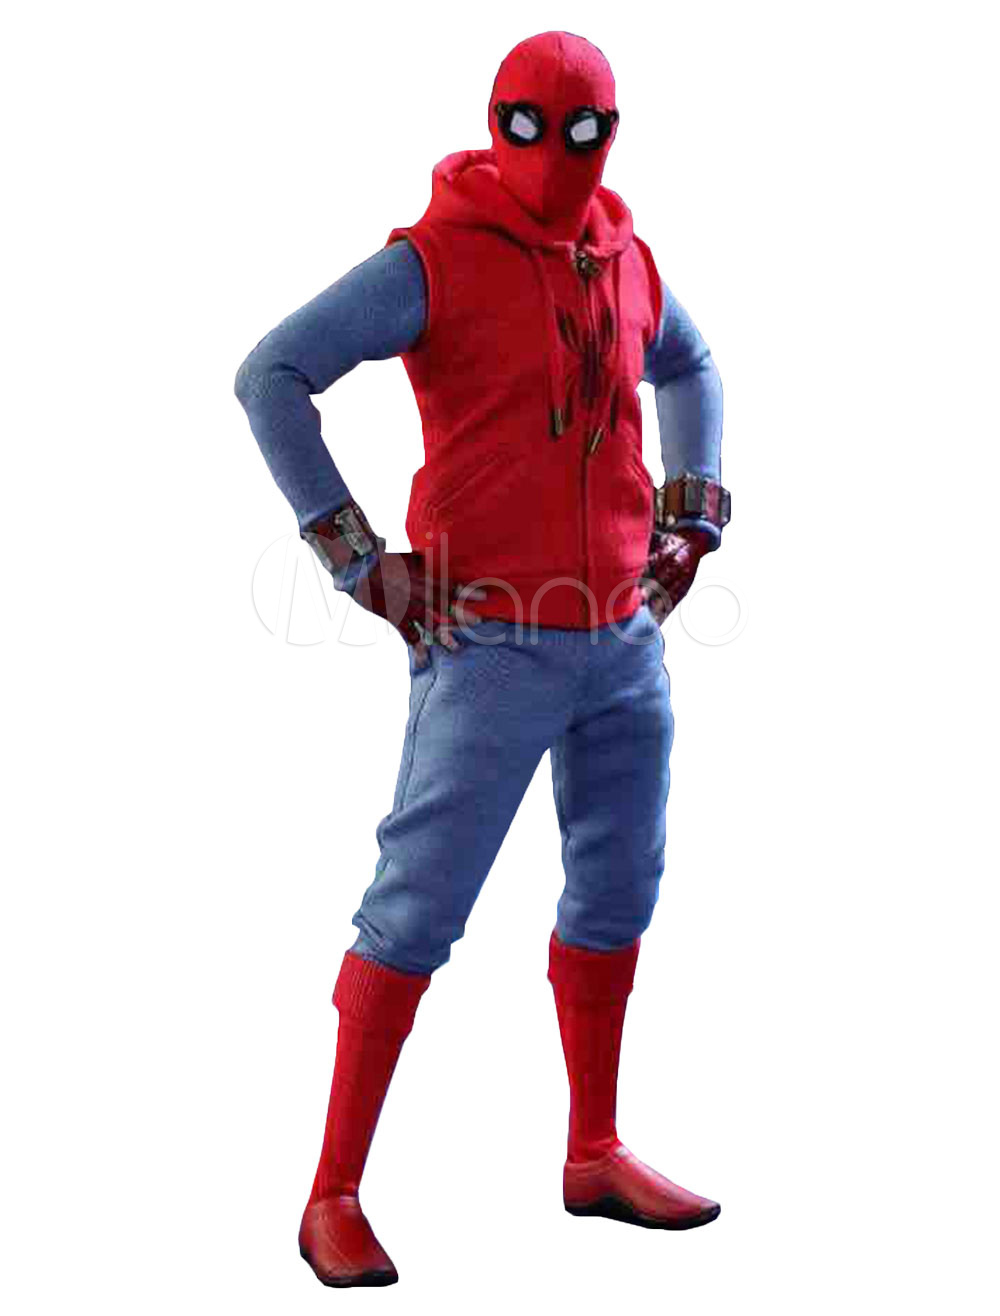 Spiderman Homecoming Marvel Comics Cosplay Costume Halloween-No.1 ...  sc 1 st  Milanoo.com & Spiderman Homecoming Marvel Comics Cosplay Costume Halloween ...